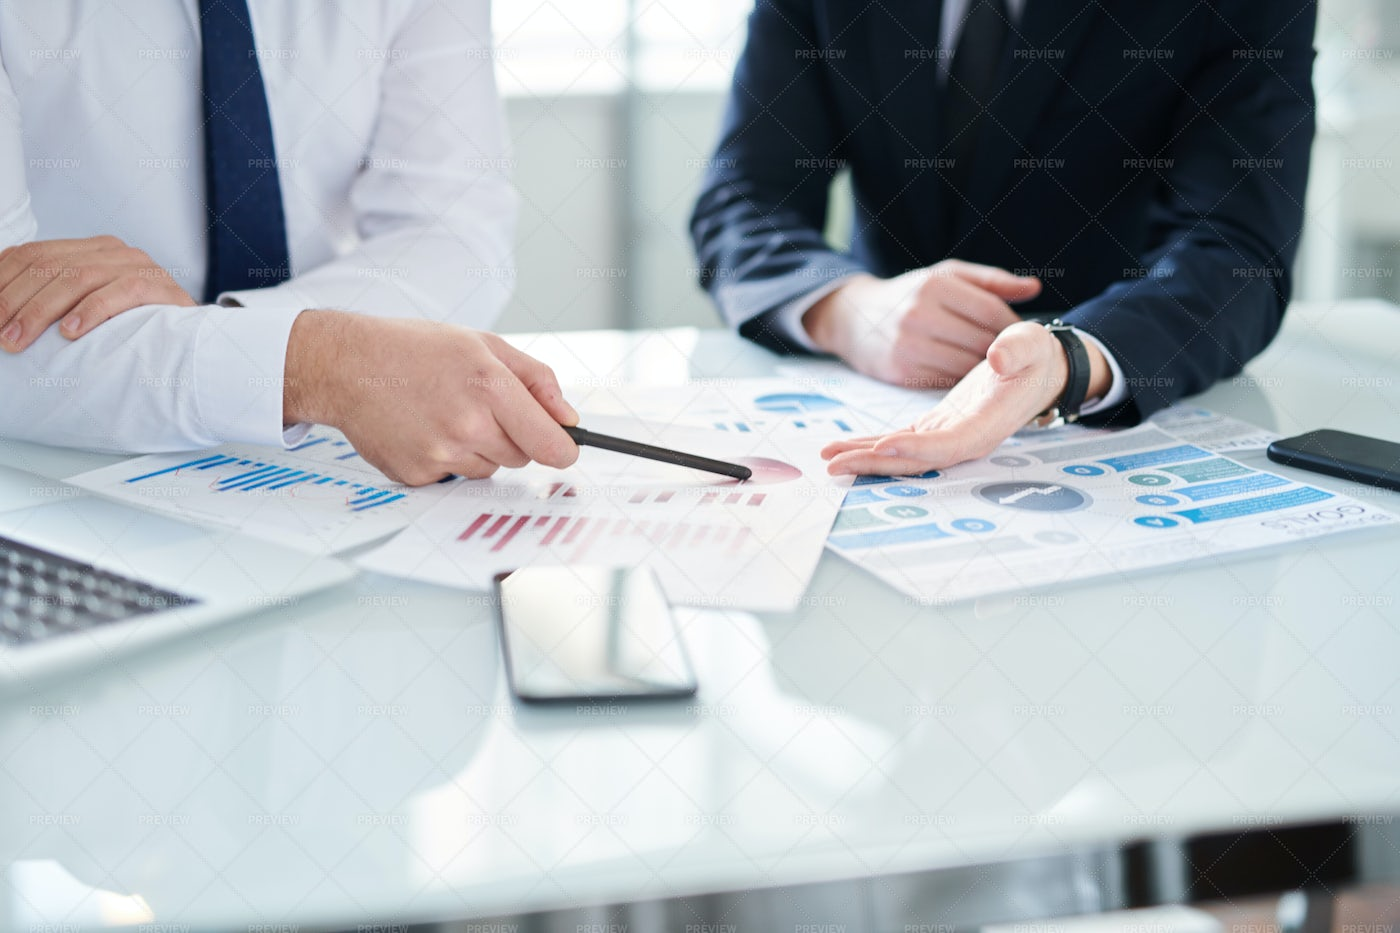 Discussing Financial Papers: Stock Photos